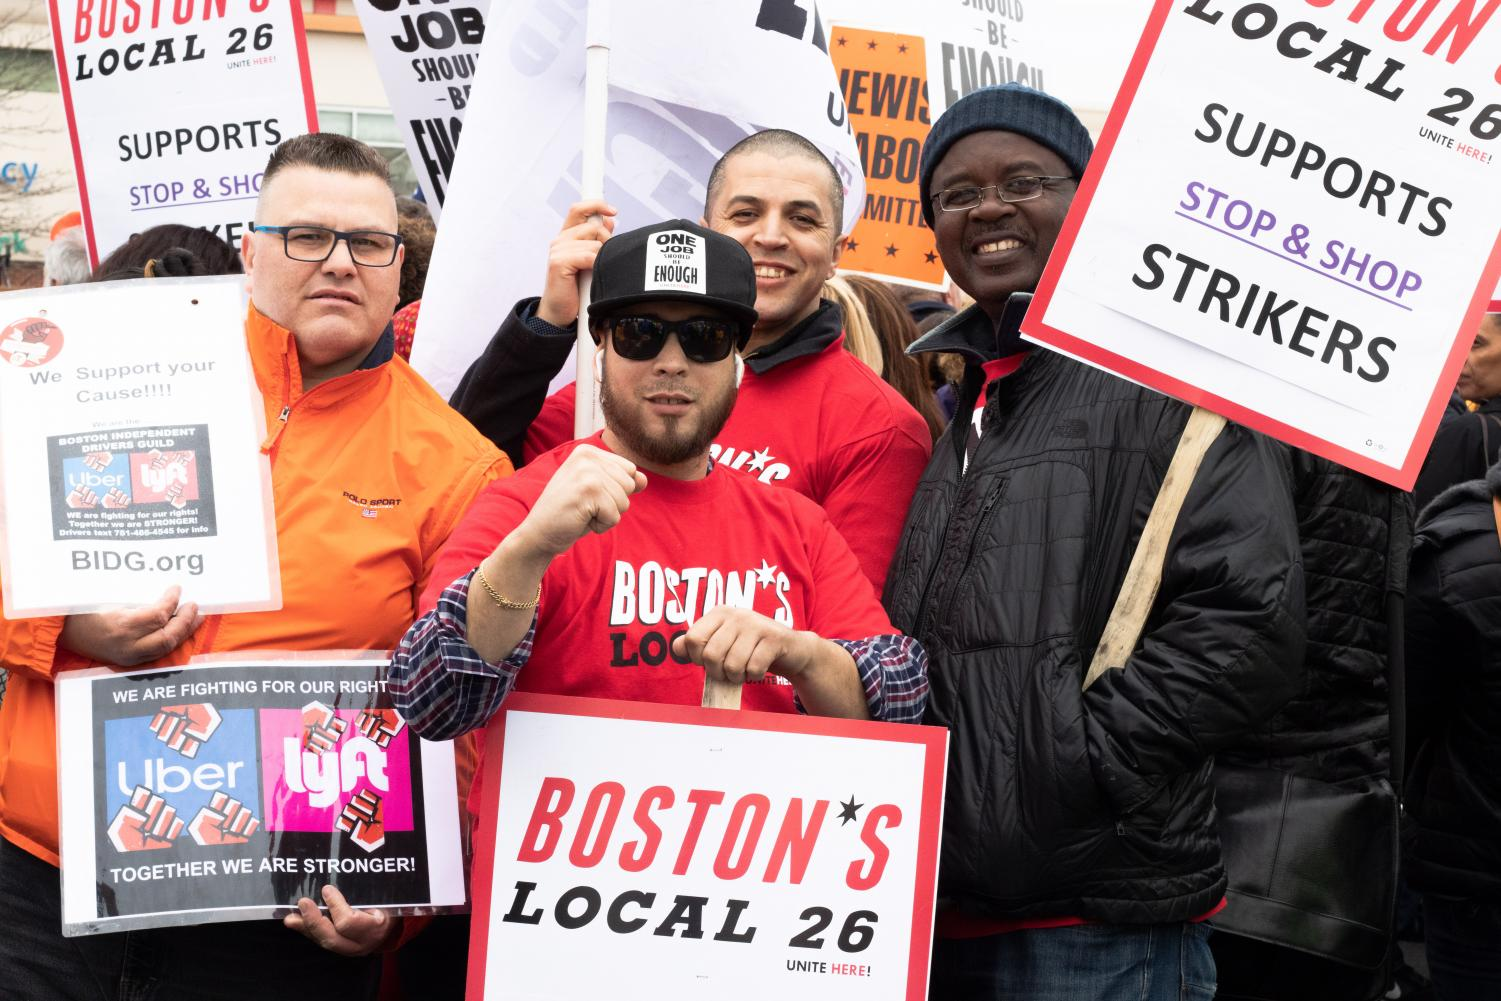 %28From+left%29+Felipe+V+Martinez%2C+Edwin+Gonzalez%2C+Zouhir+Ntouda+and+Serge+Duffault+attend+the+rally+to+support+Stop+%26+Shop+strikers.+